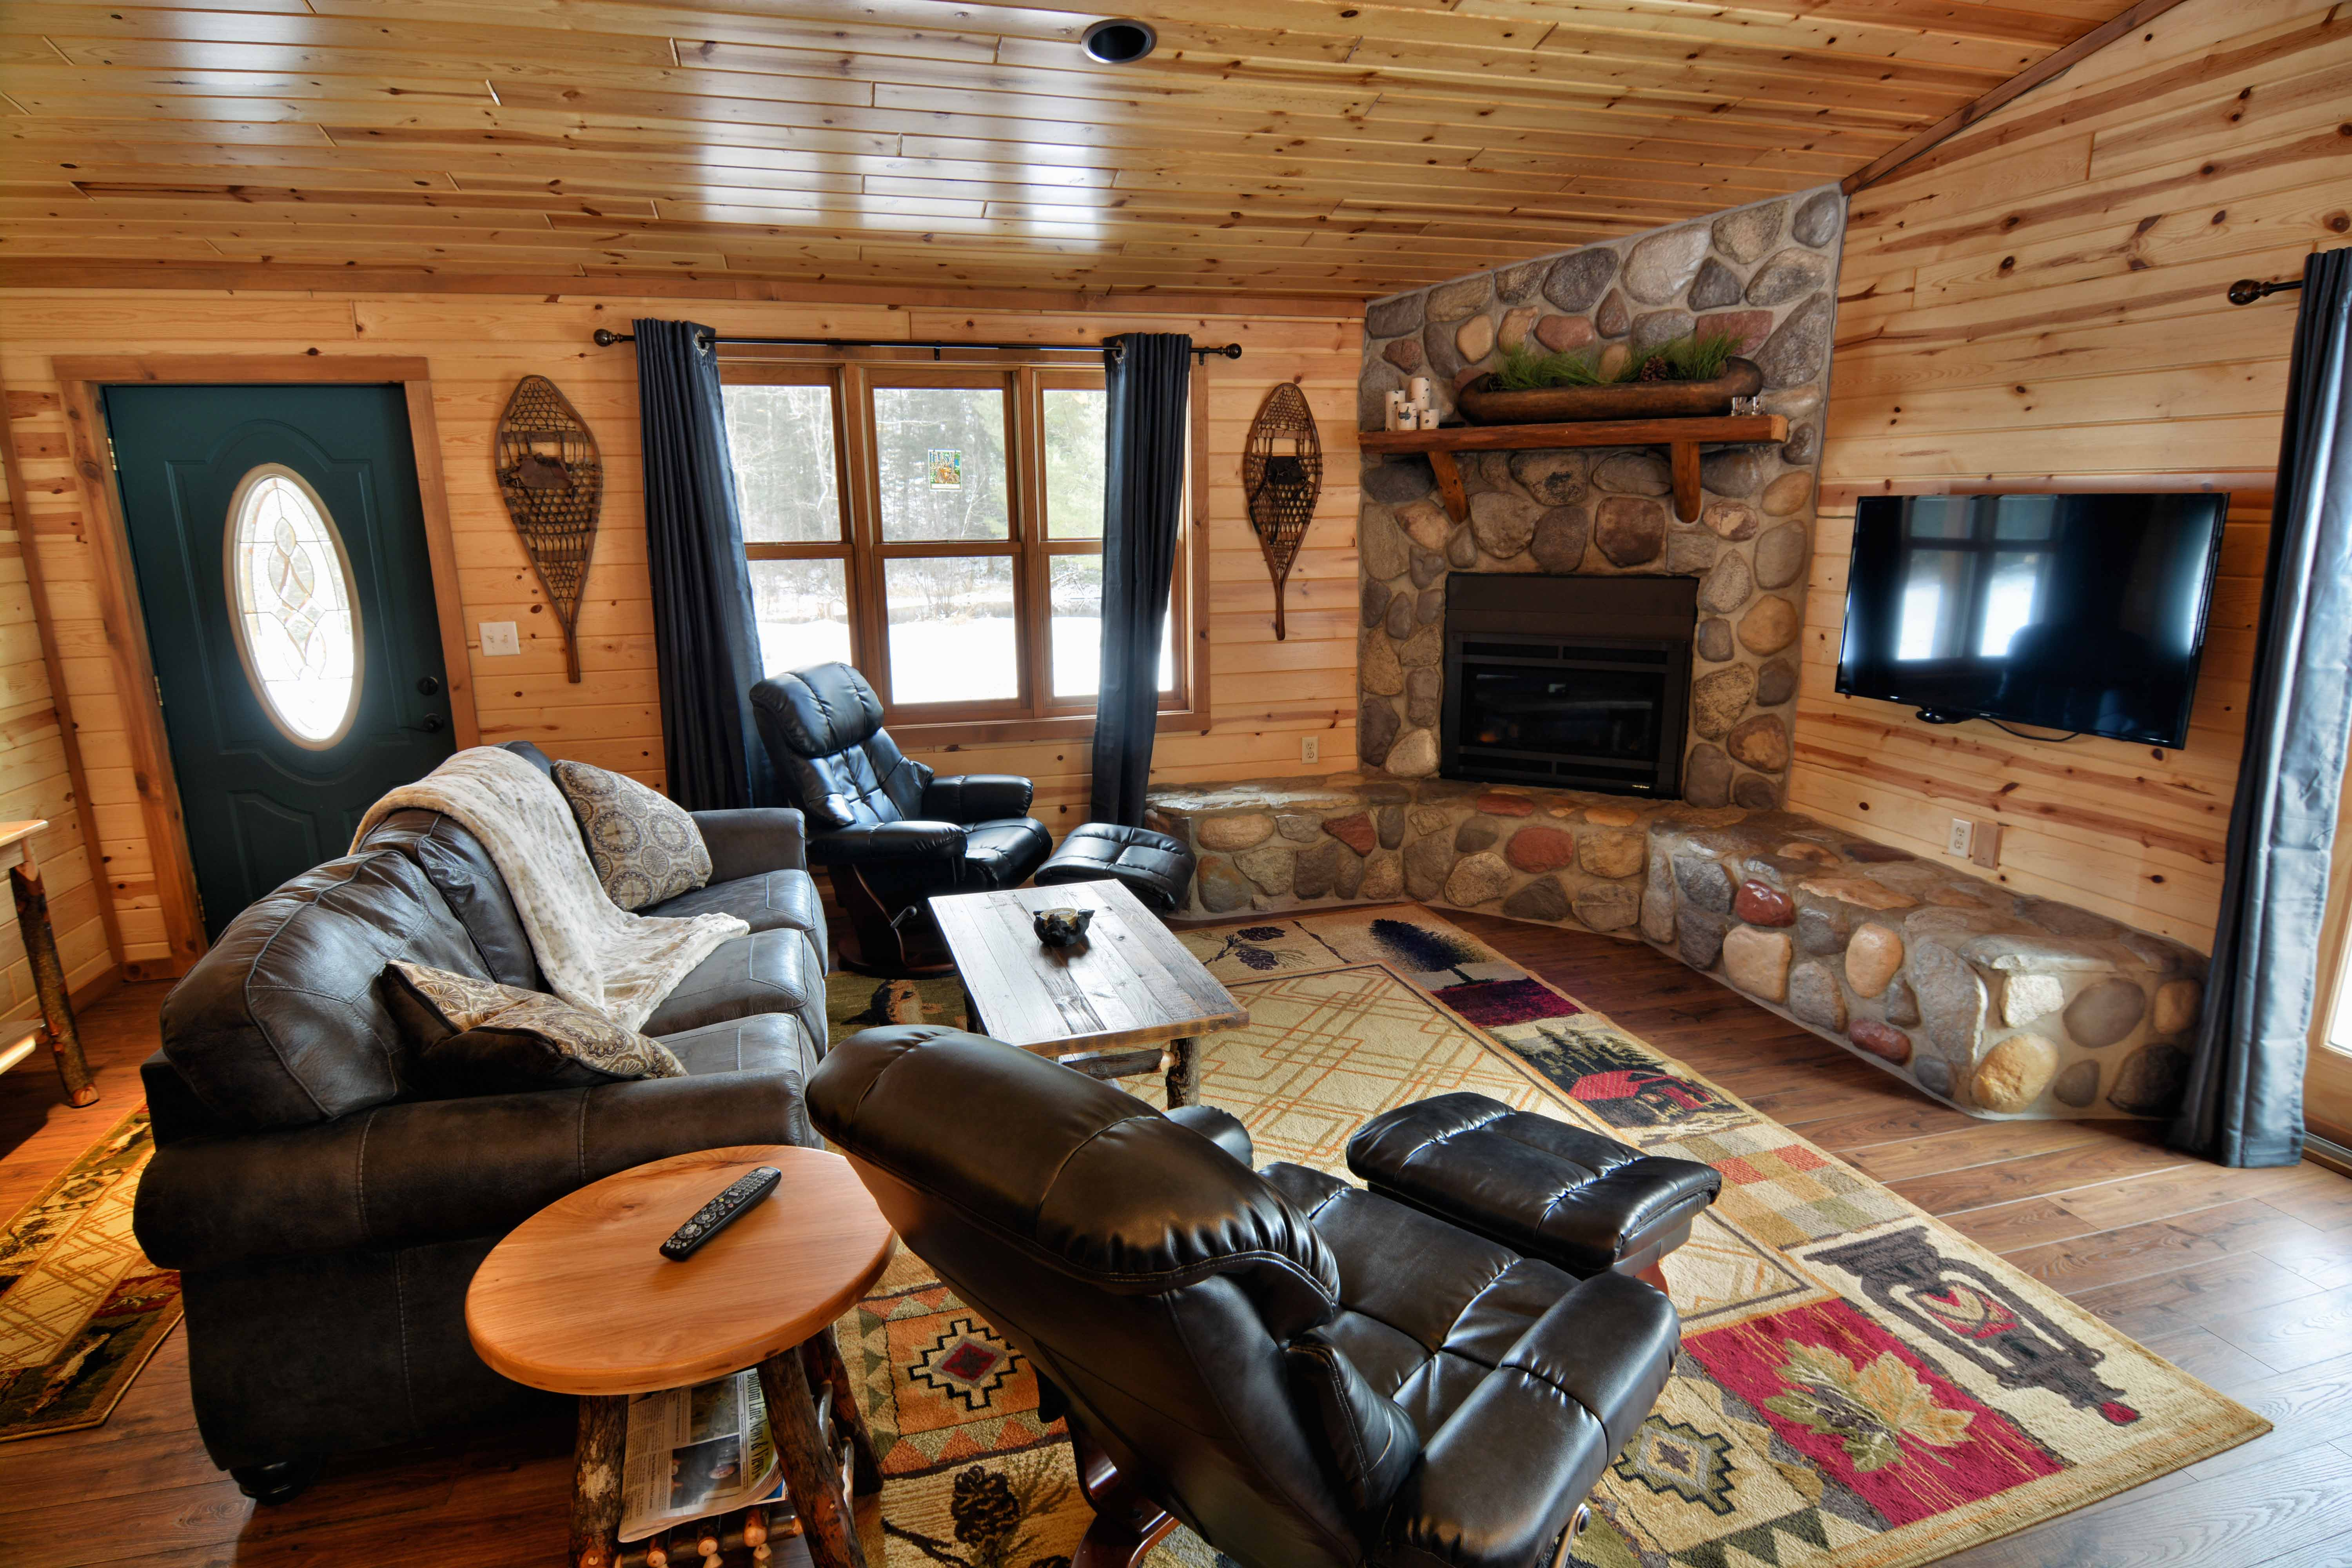 cabins big for on sale cabin bear deals lodging rent california lake wi lakefront wv by wisconsin owner rentals